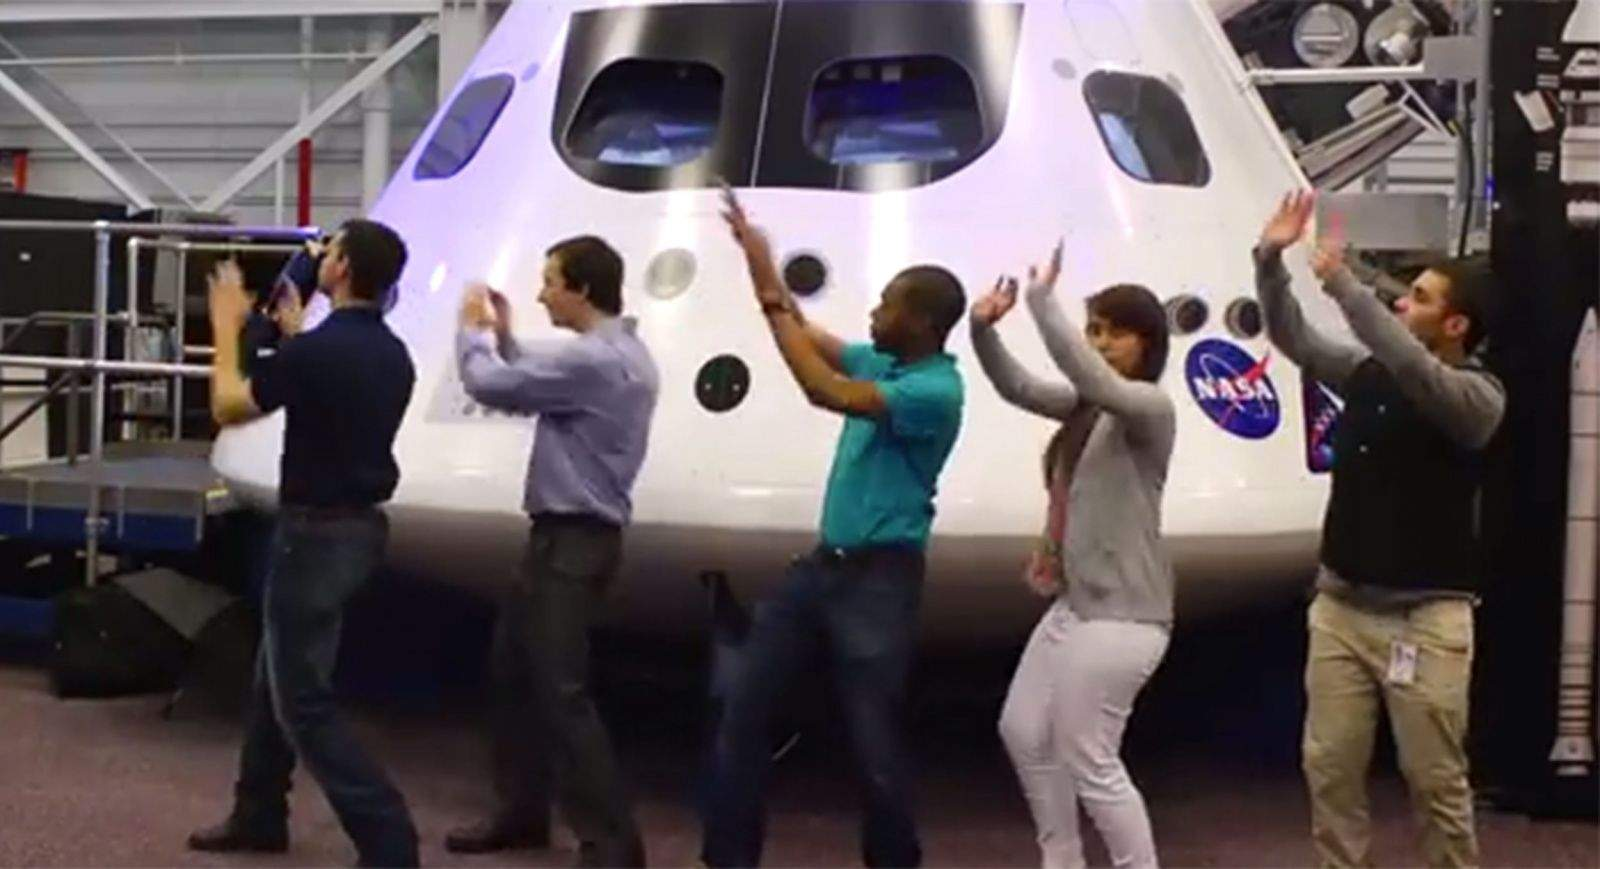 A dance line of NASA interns from a scene in their parody music video called